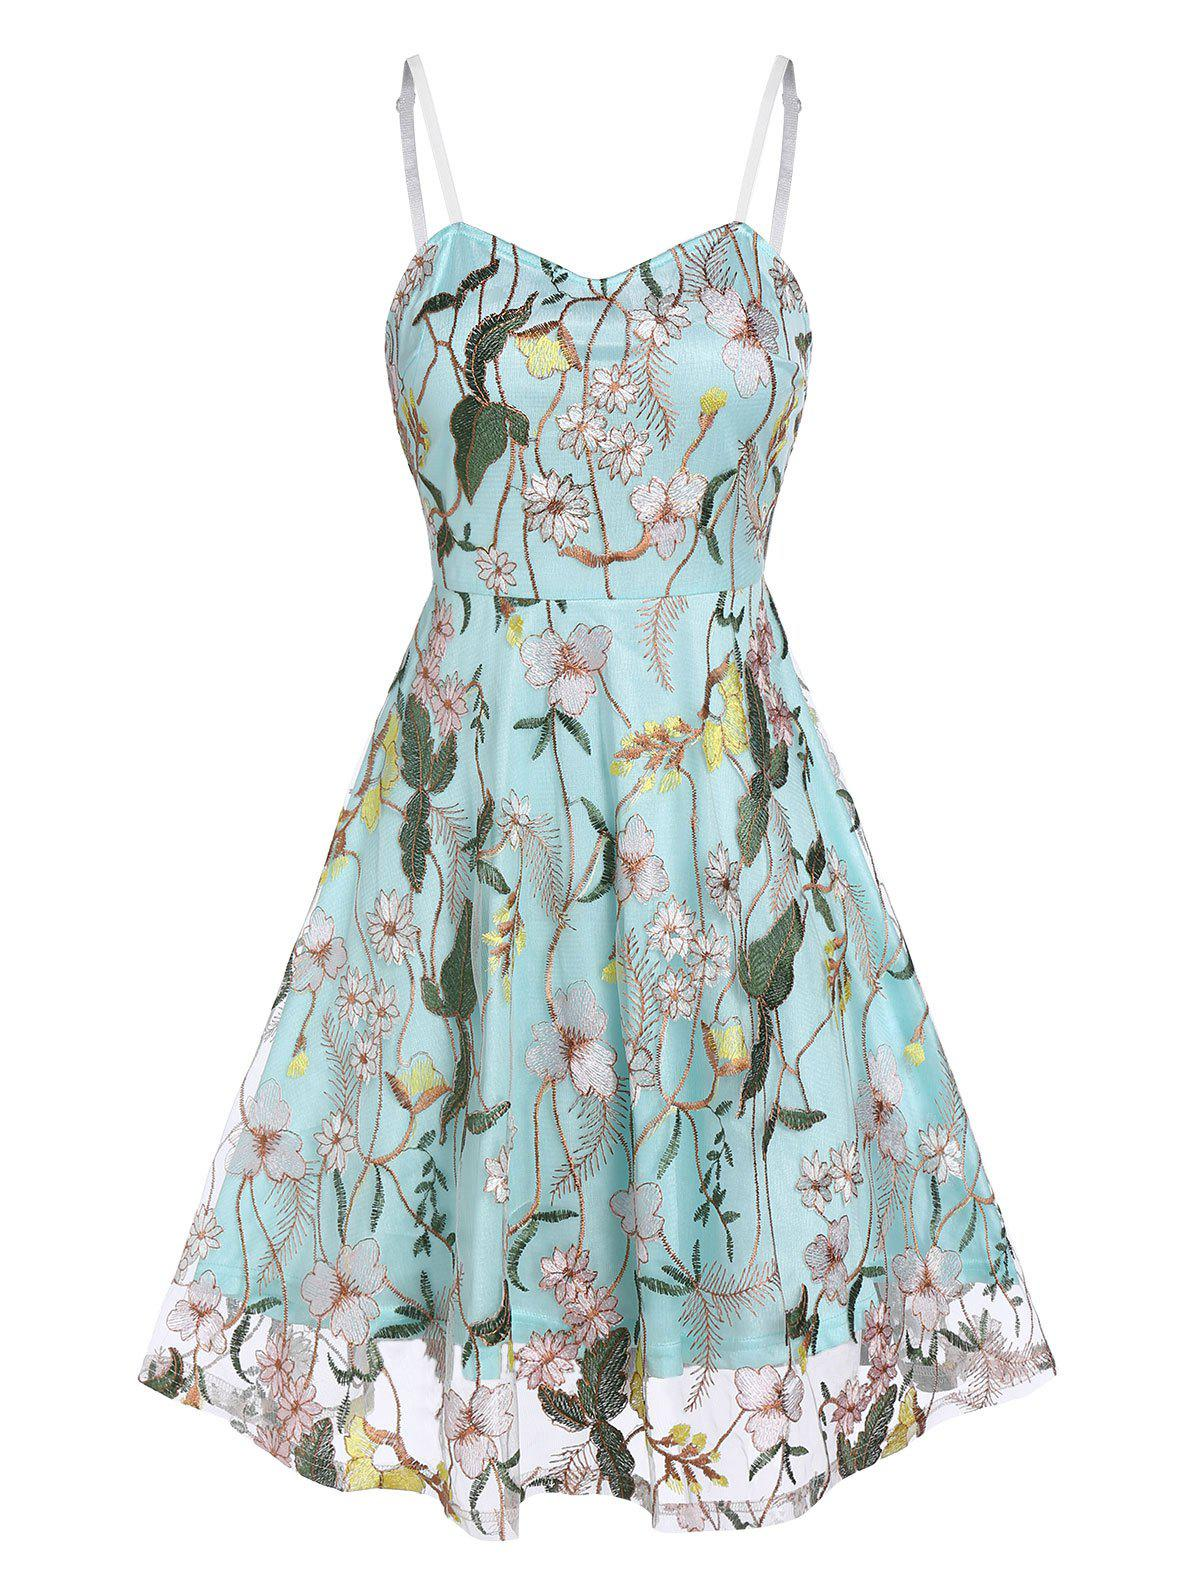 Shop Flower Embroidery Lace Slip Layered Dress